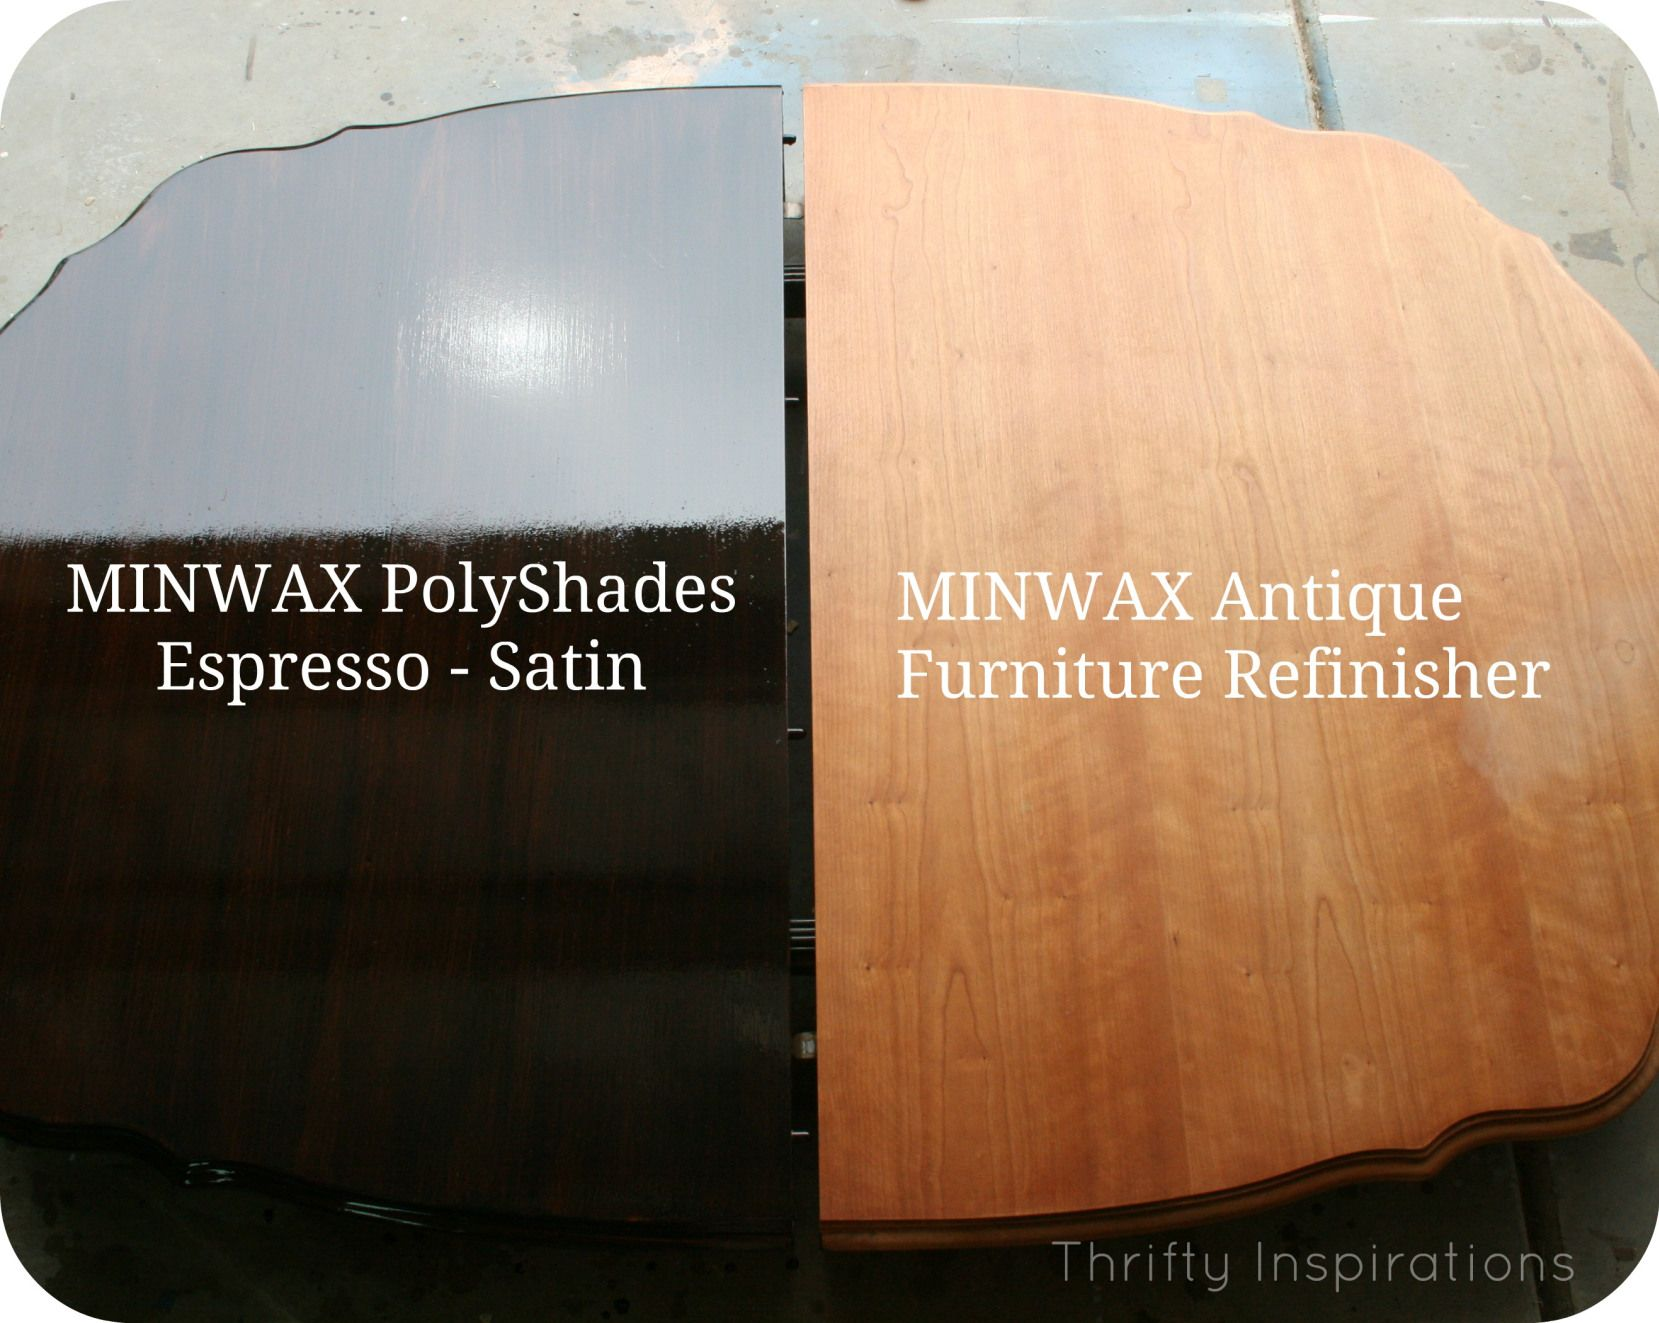 diy furniture refinishing projects. How To Refinish With Polyshades (stain And Poly In One) Diy Furniture Refinishing Projects R